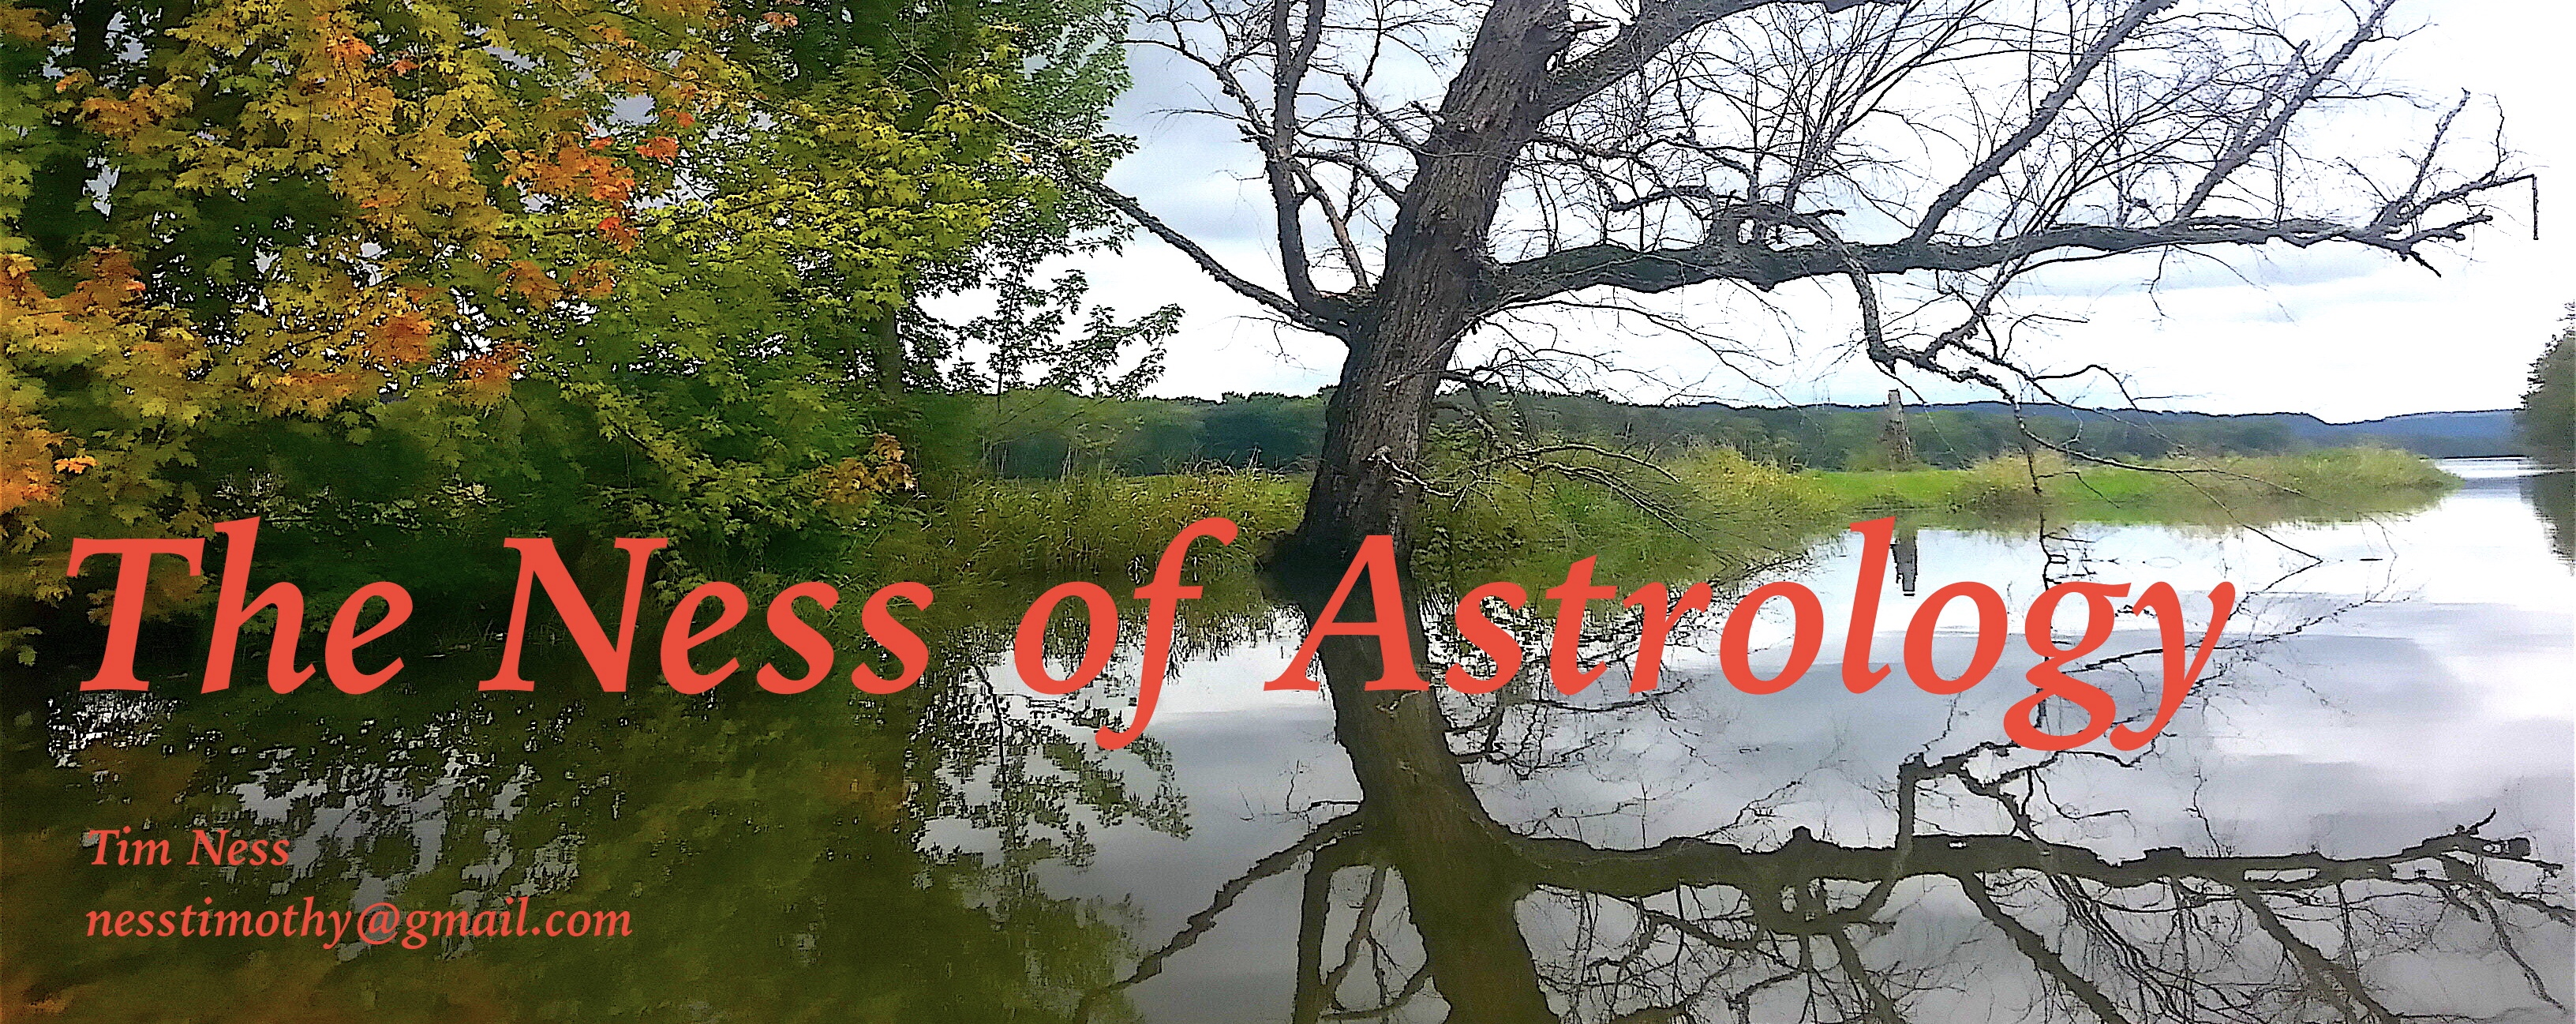 As above, so below. This is a photo of a tree reflected in water